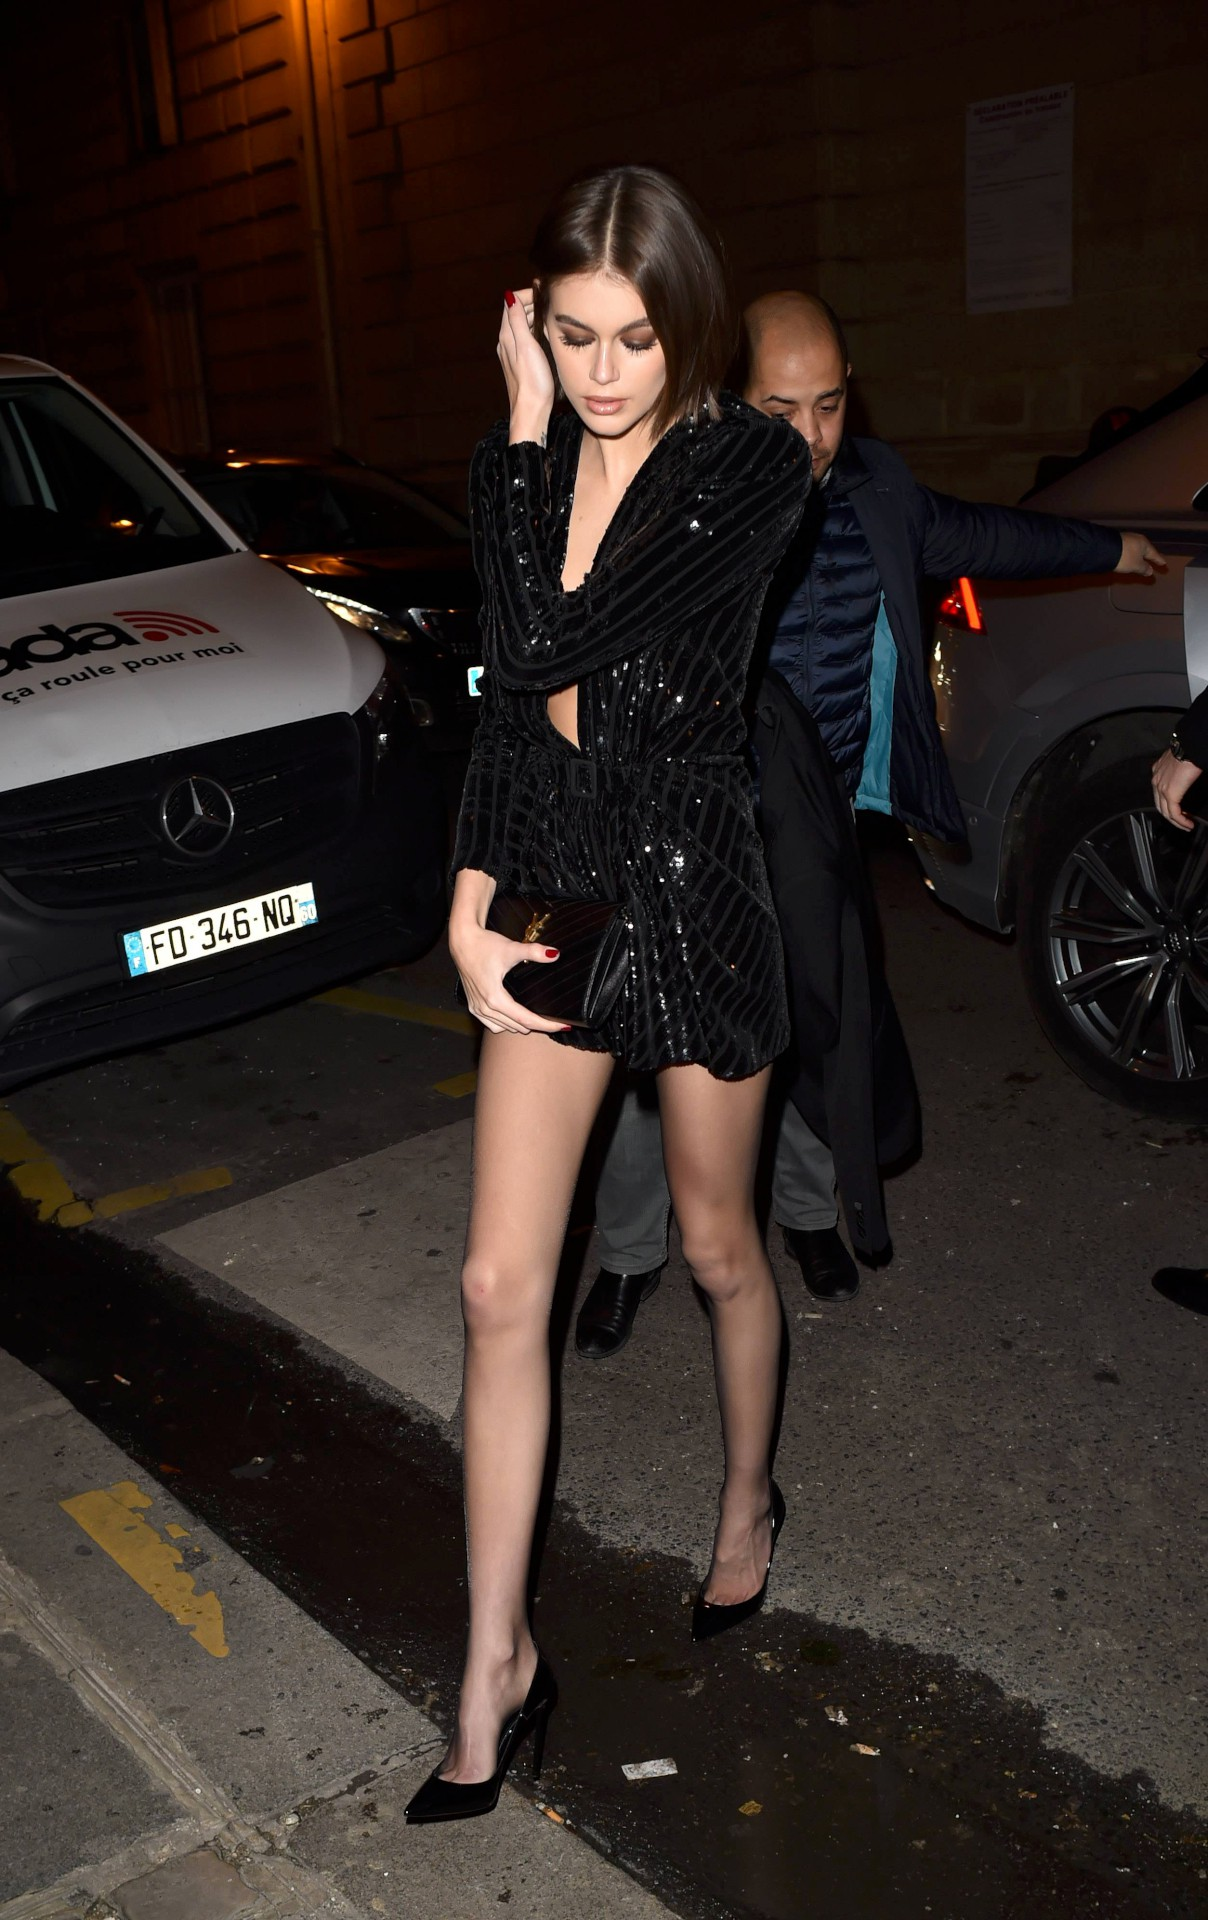 Kaia Gerber Sexy Legs And Braless Boobs